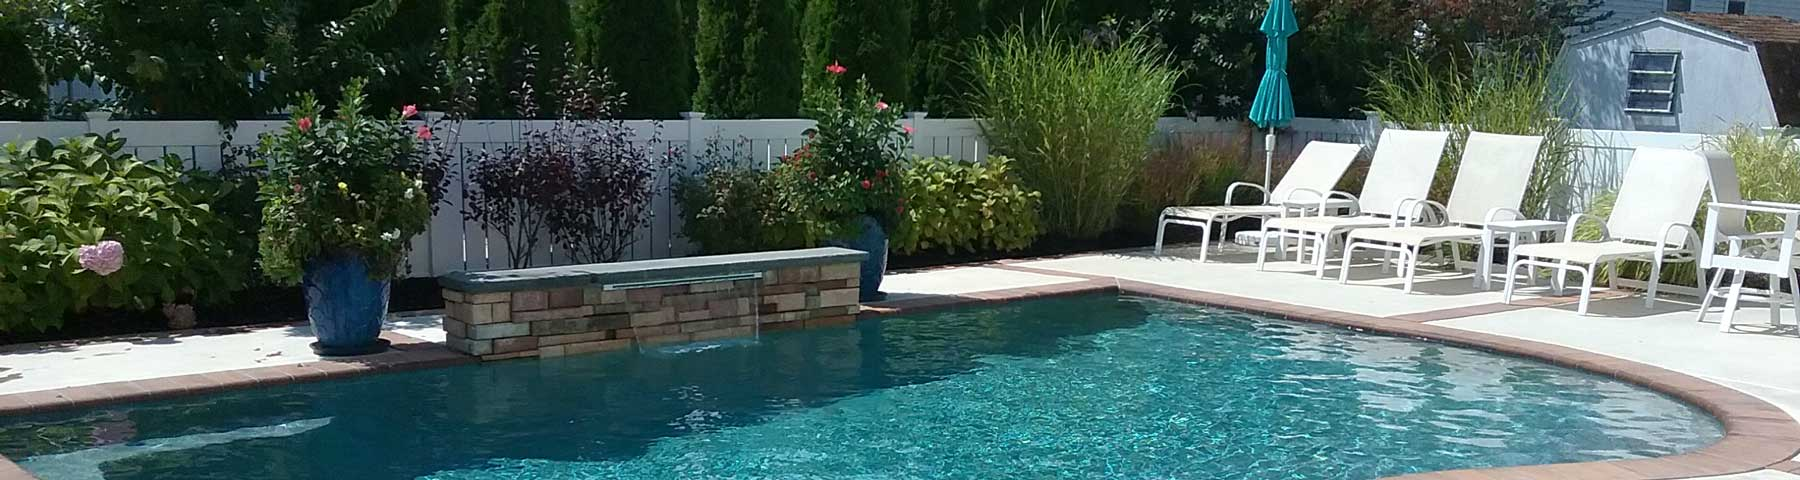 Pool with Fountain in Cape May, NJ